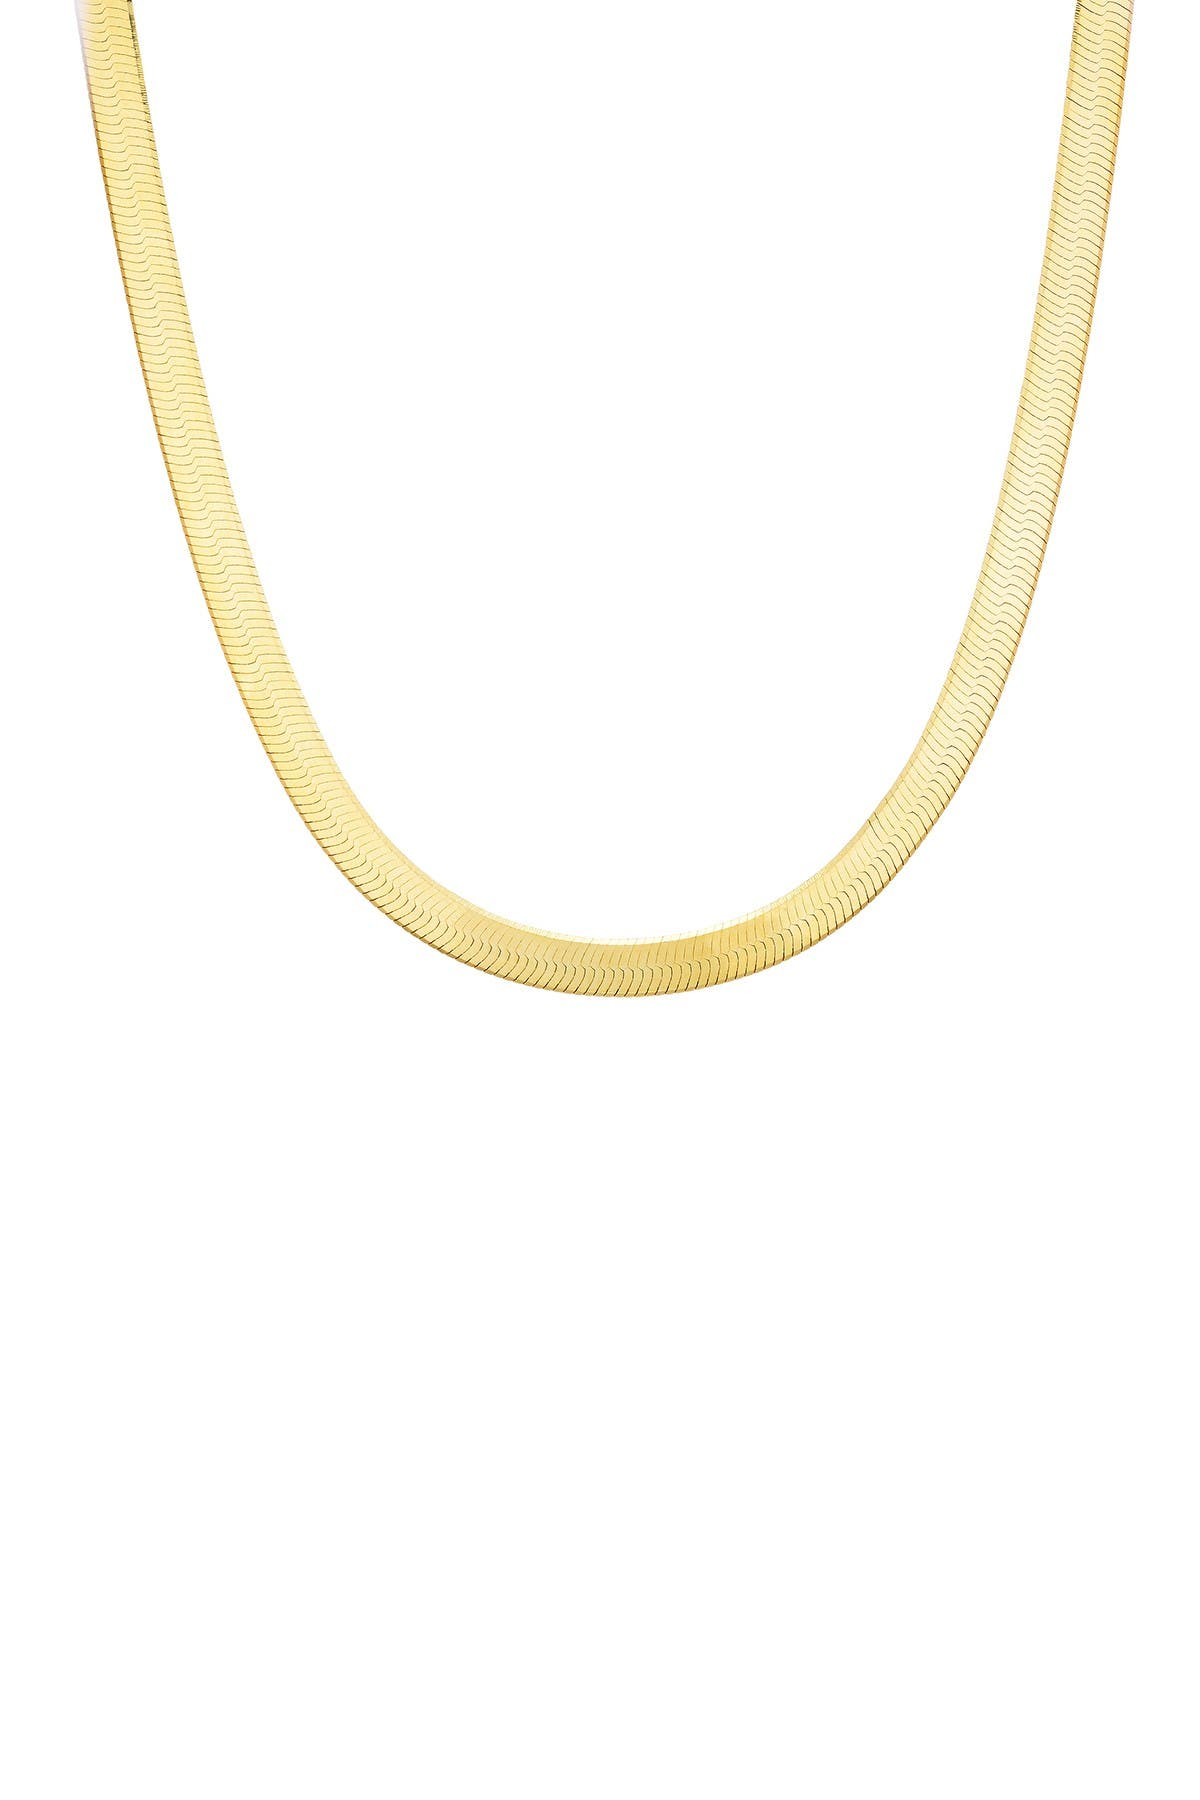 Image of Sphera Milano 14K Yellow Gold Plated Sterling Silver Herringbone Snake Chain Necklace